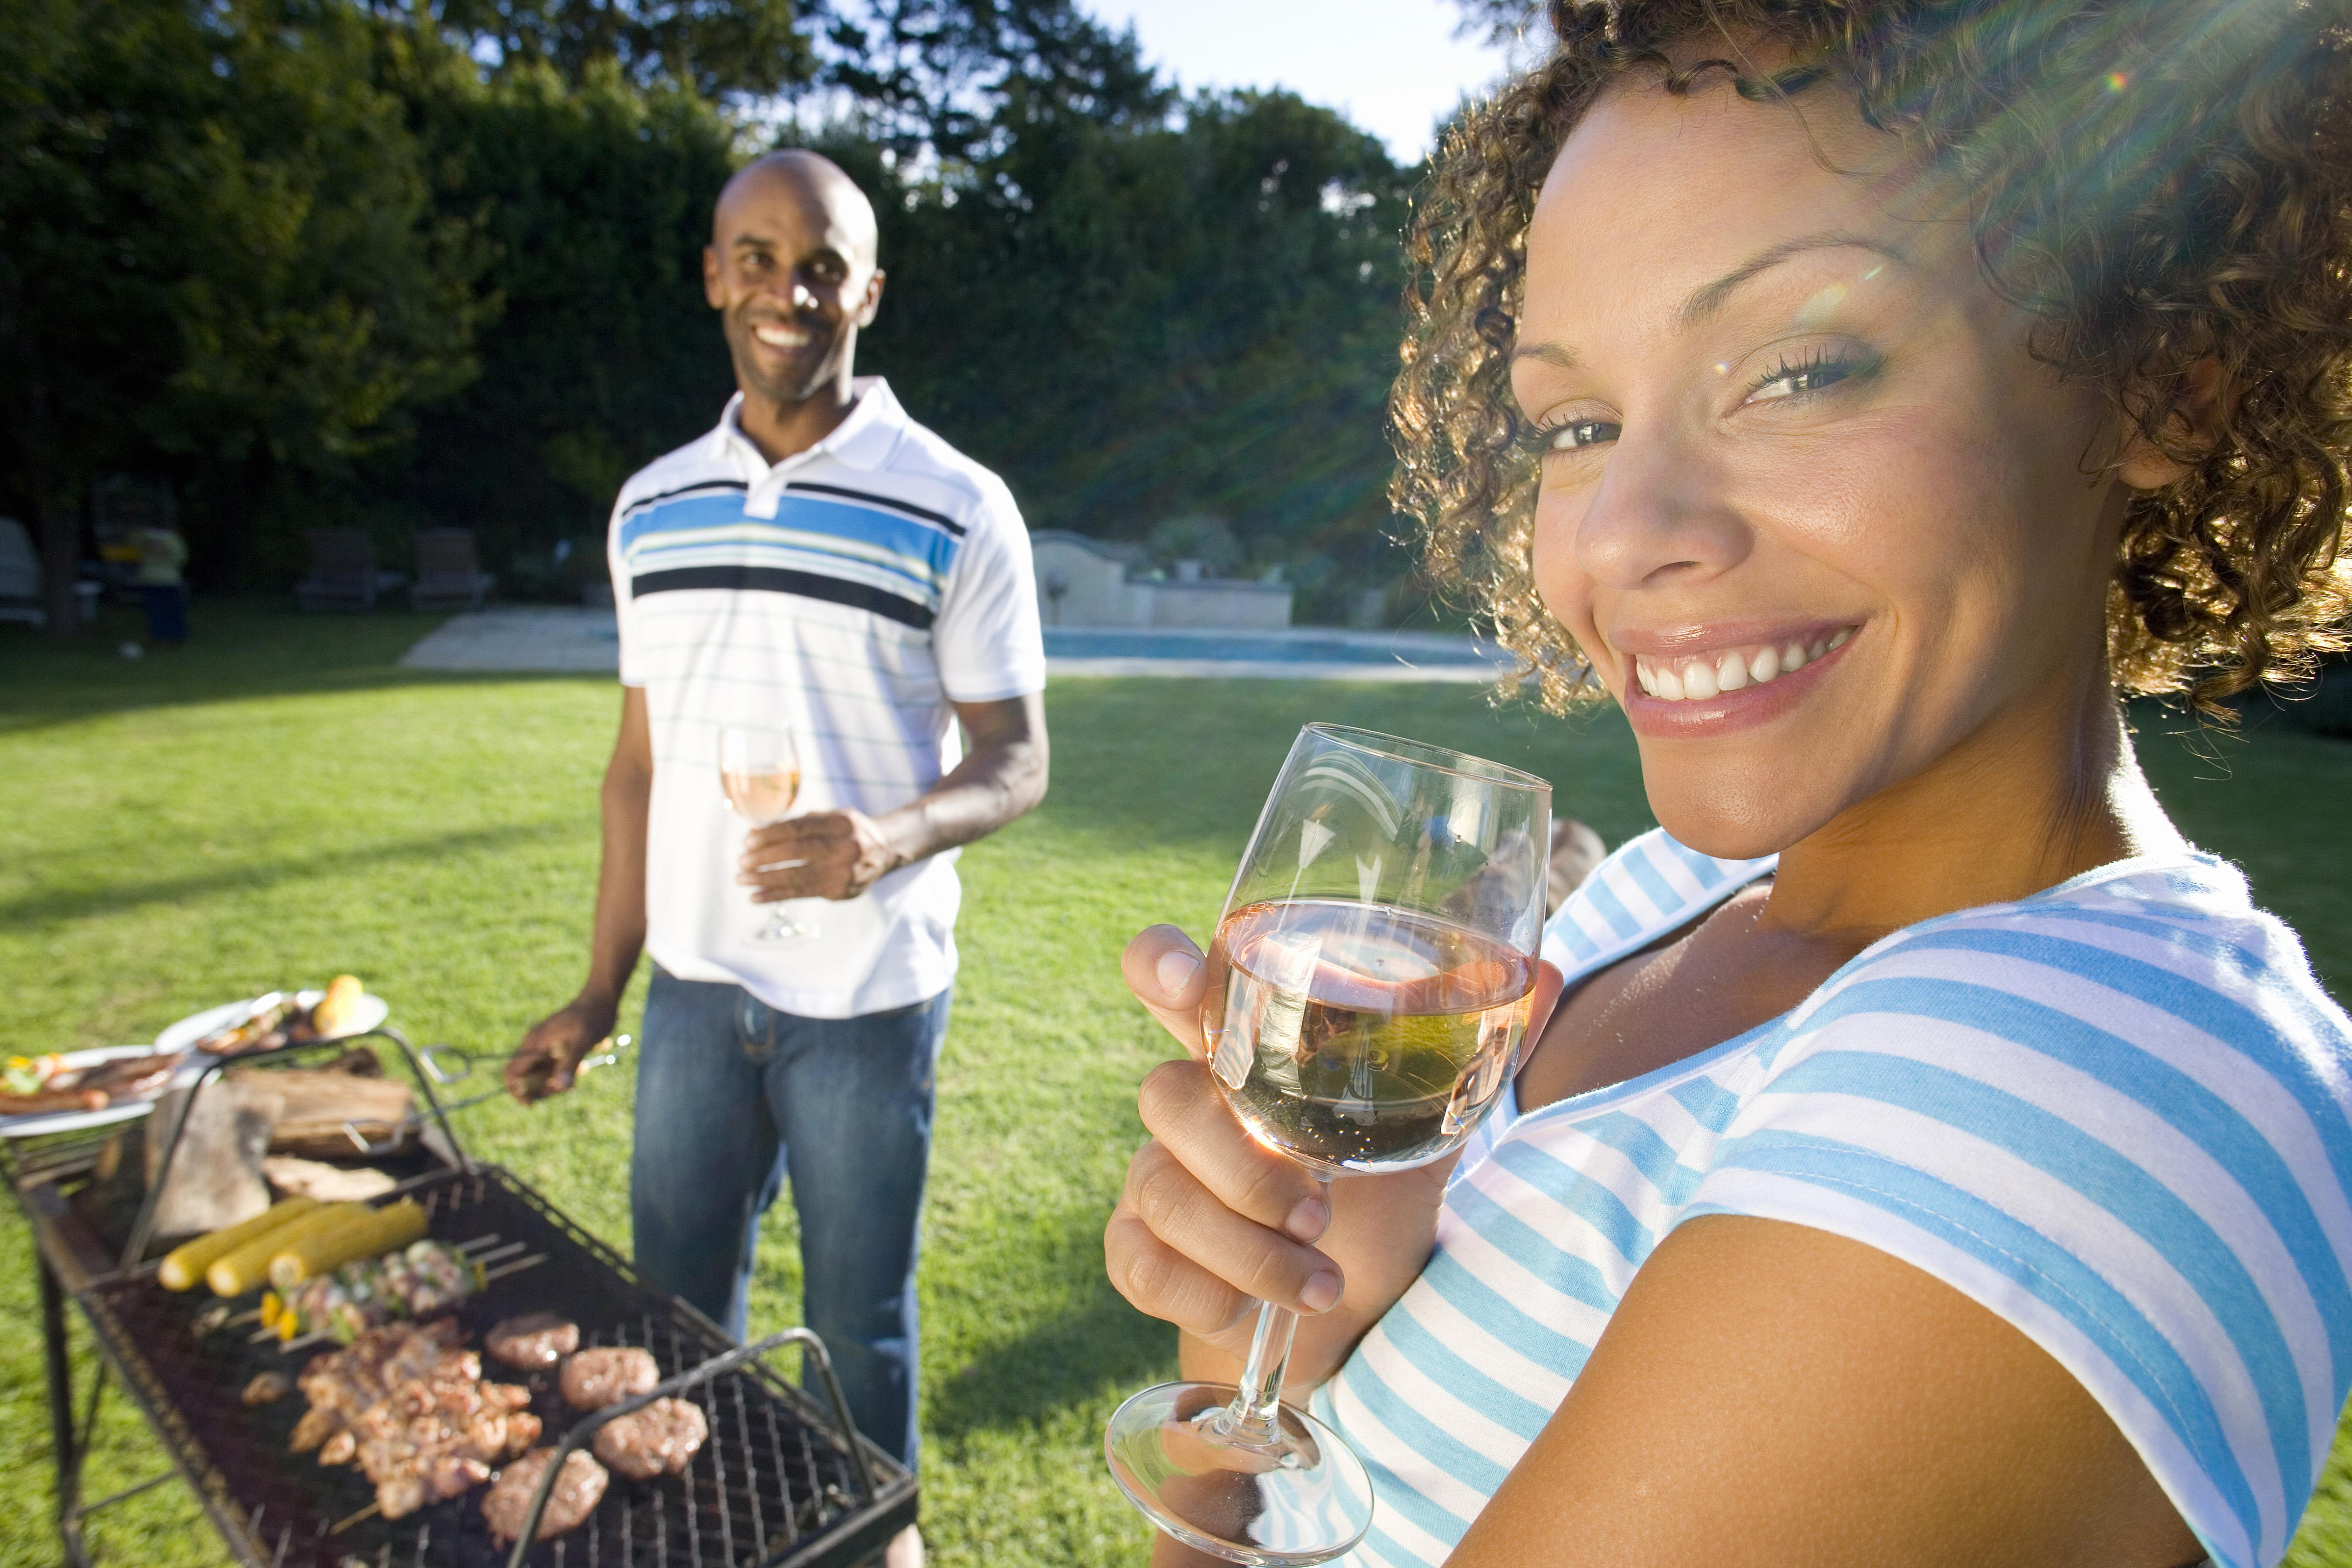 Couple having barbeque outdoors, woman holding glass of wine smiling in foreground